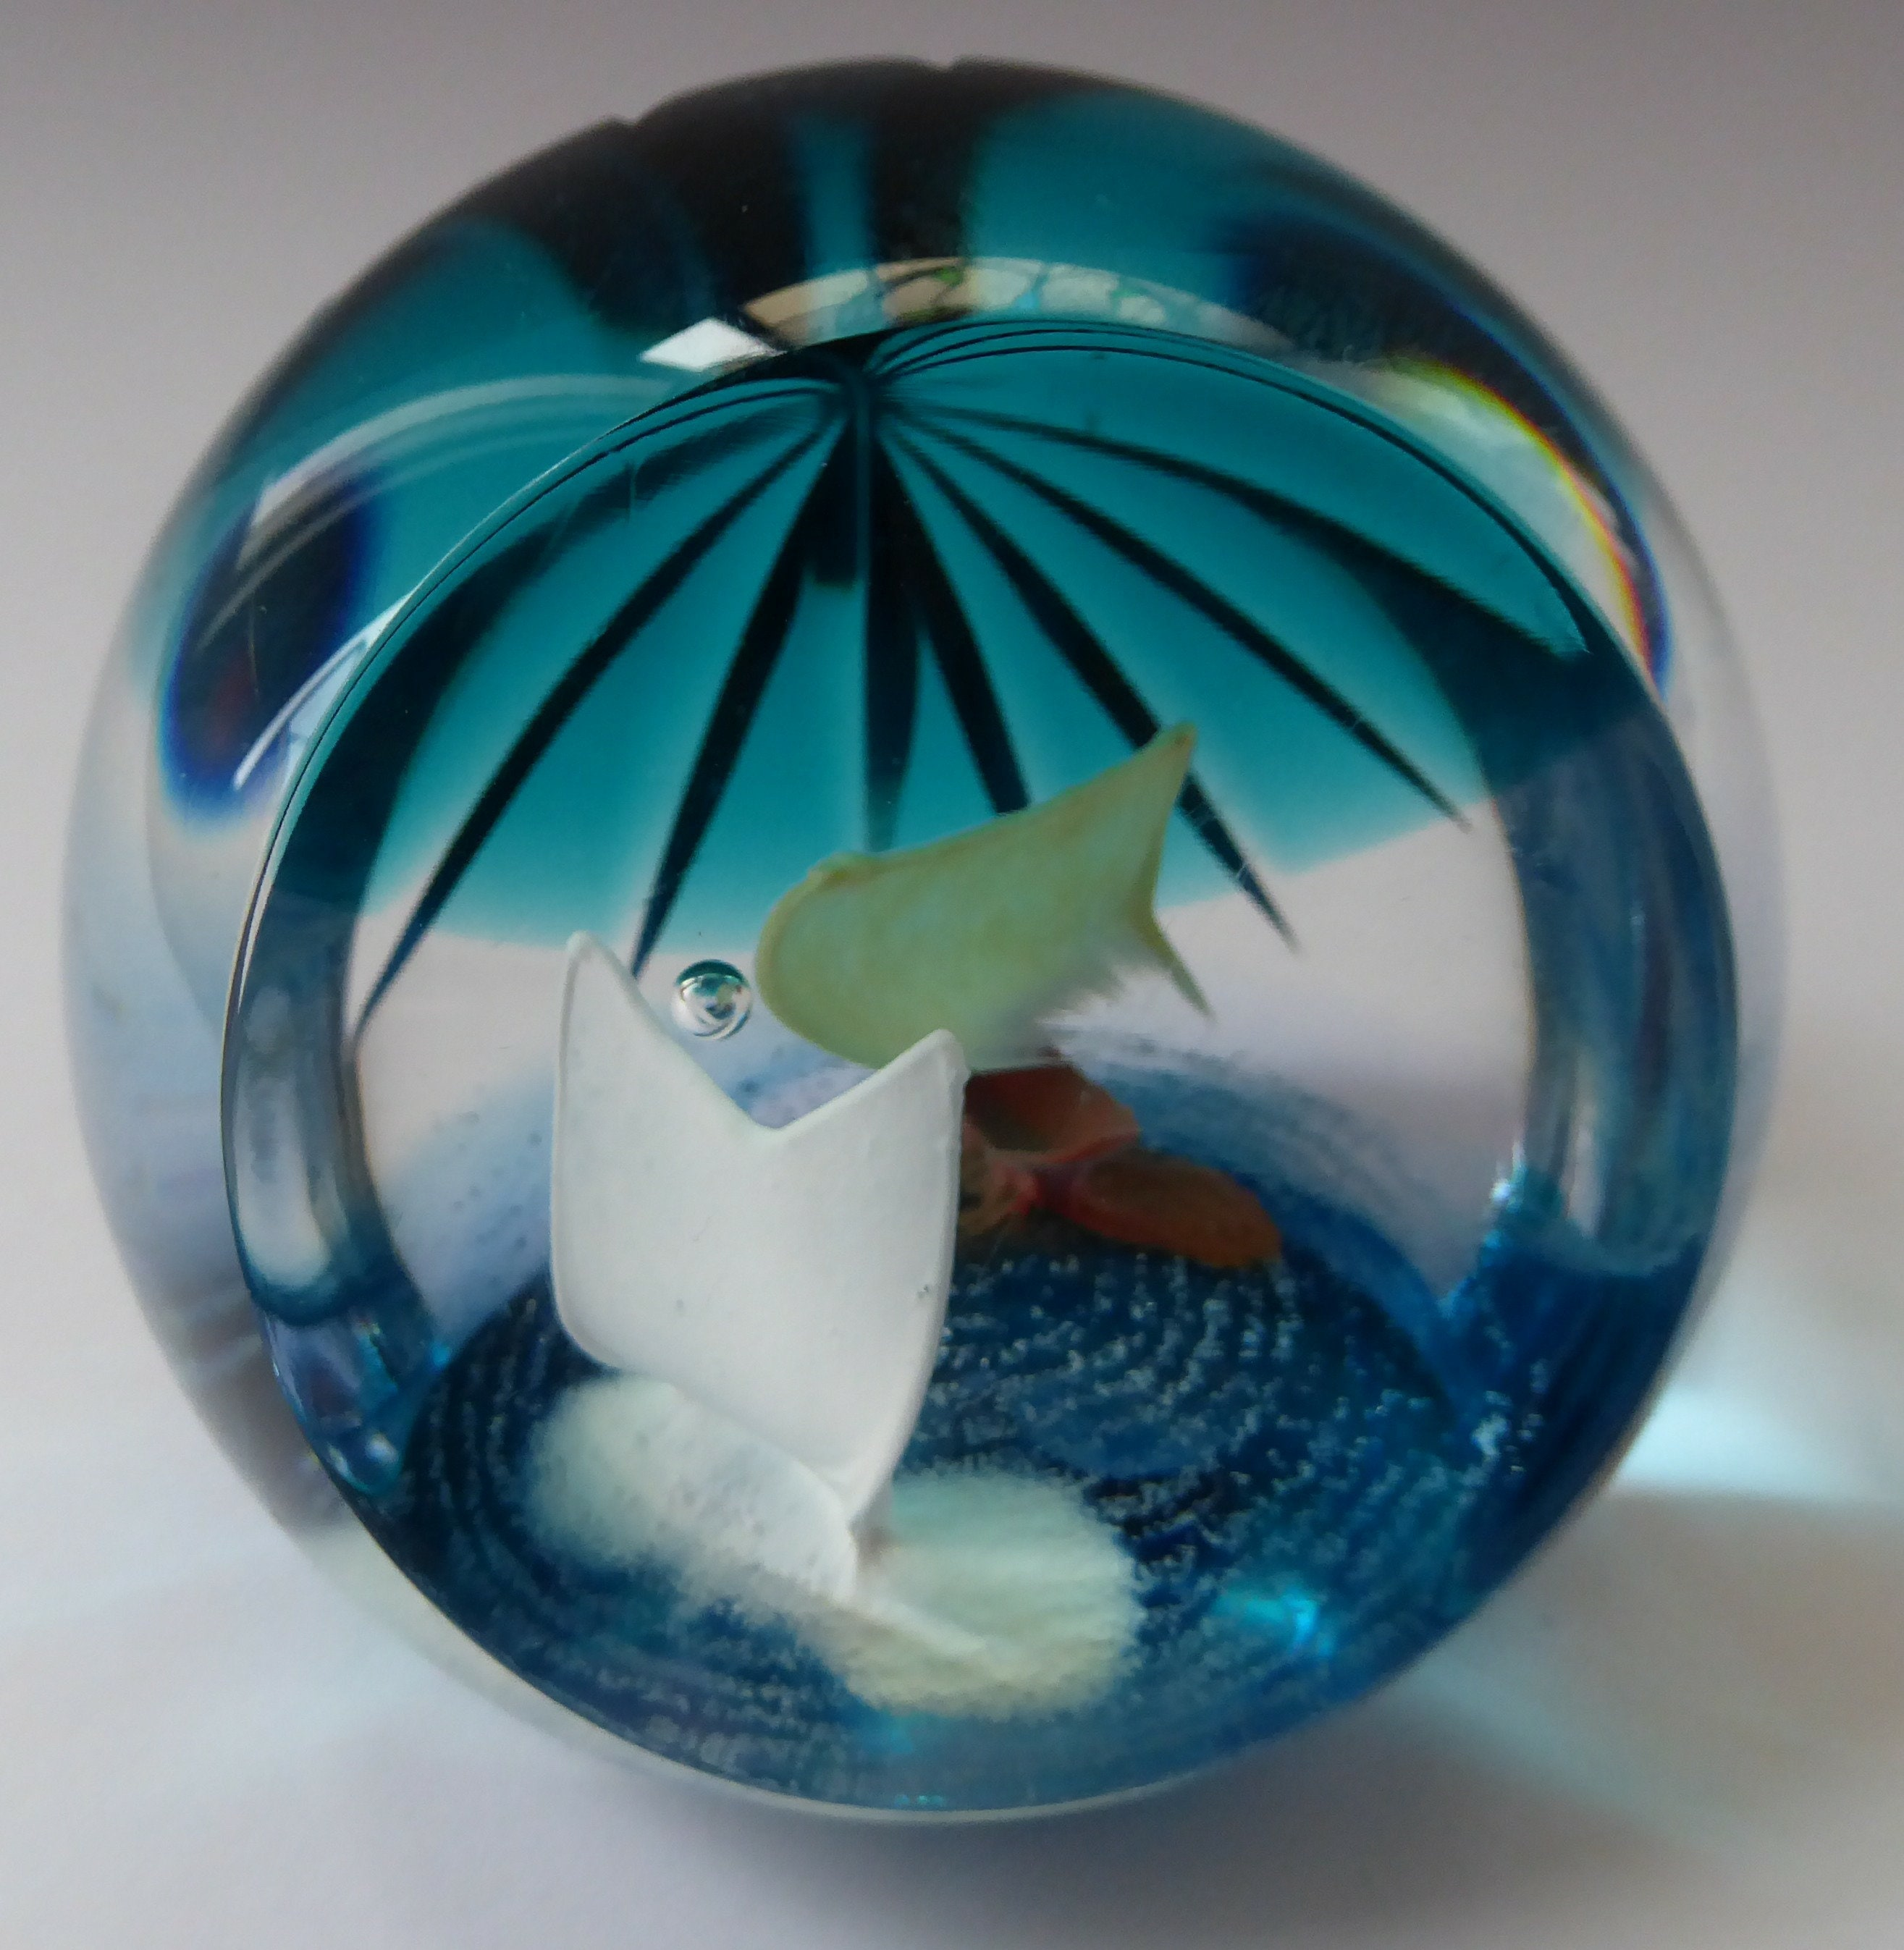 0bcecc6908c CAITHNESS GLASS. Limited Edition Vintage Paperweight. Walking on Water by  Helen MacDonald. Limited Edition of 200